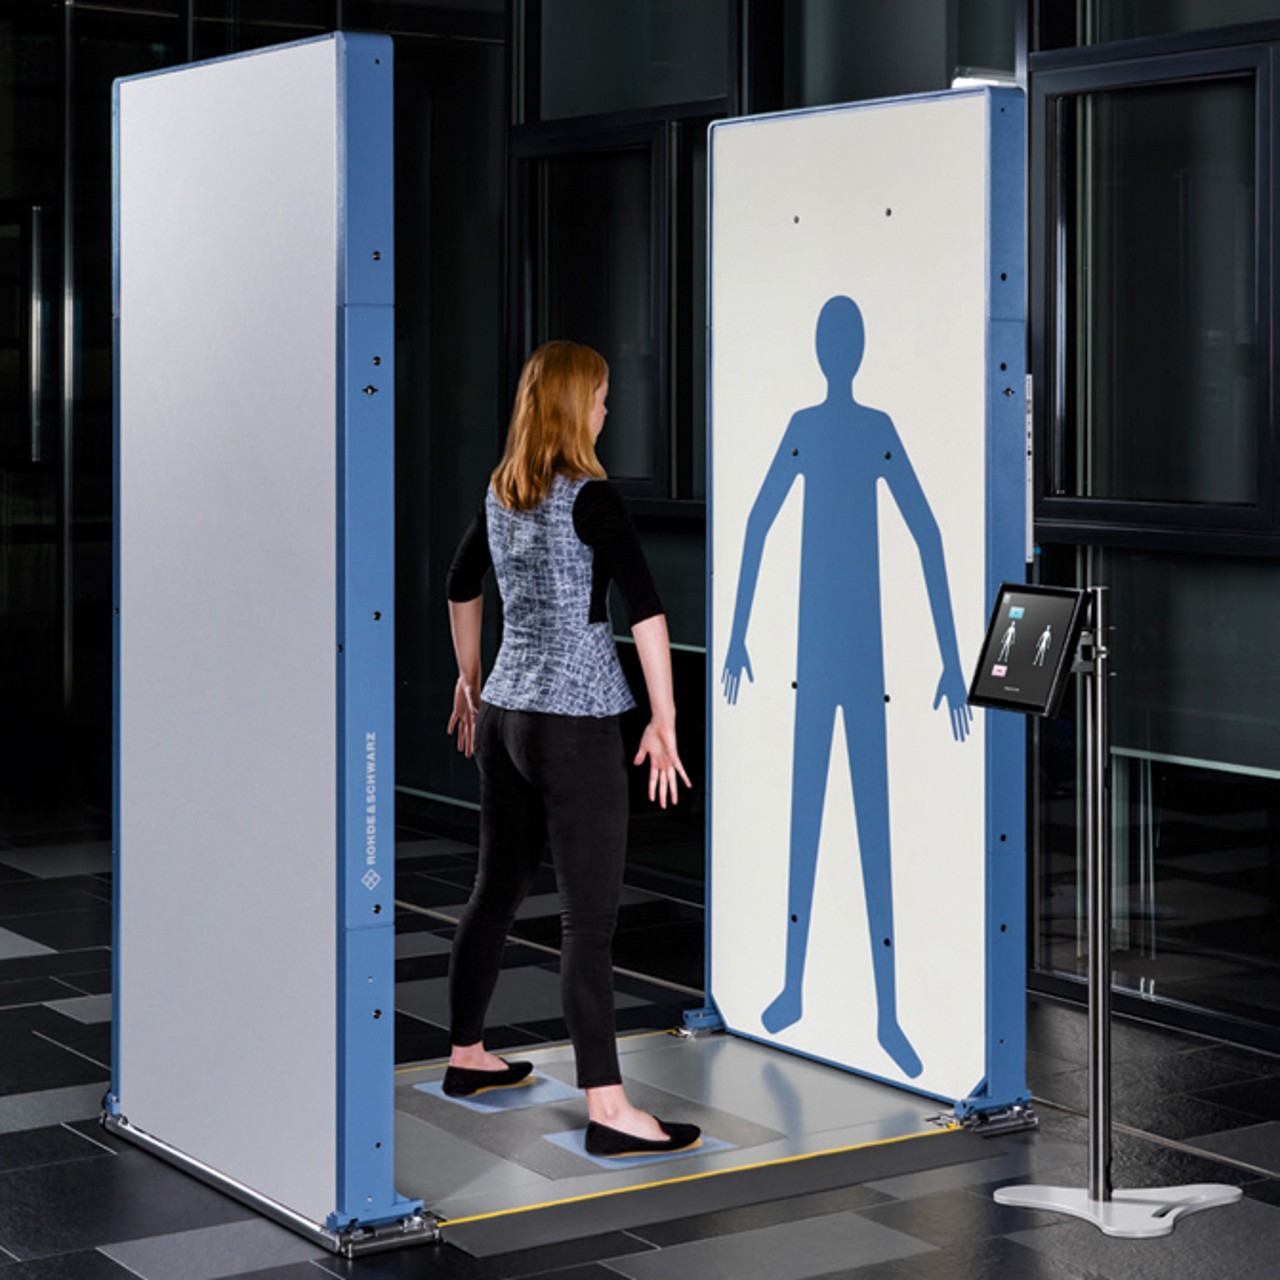 QPS allows a more natural scanning pose and automatically alerts the system operator of improper positioning